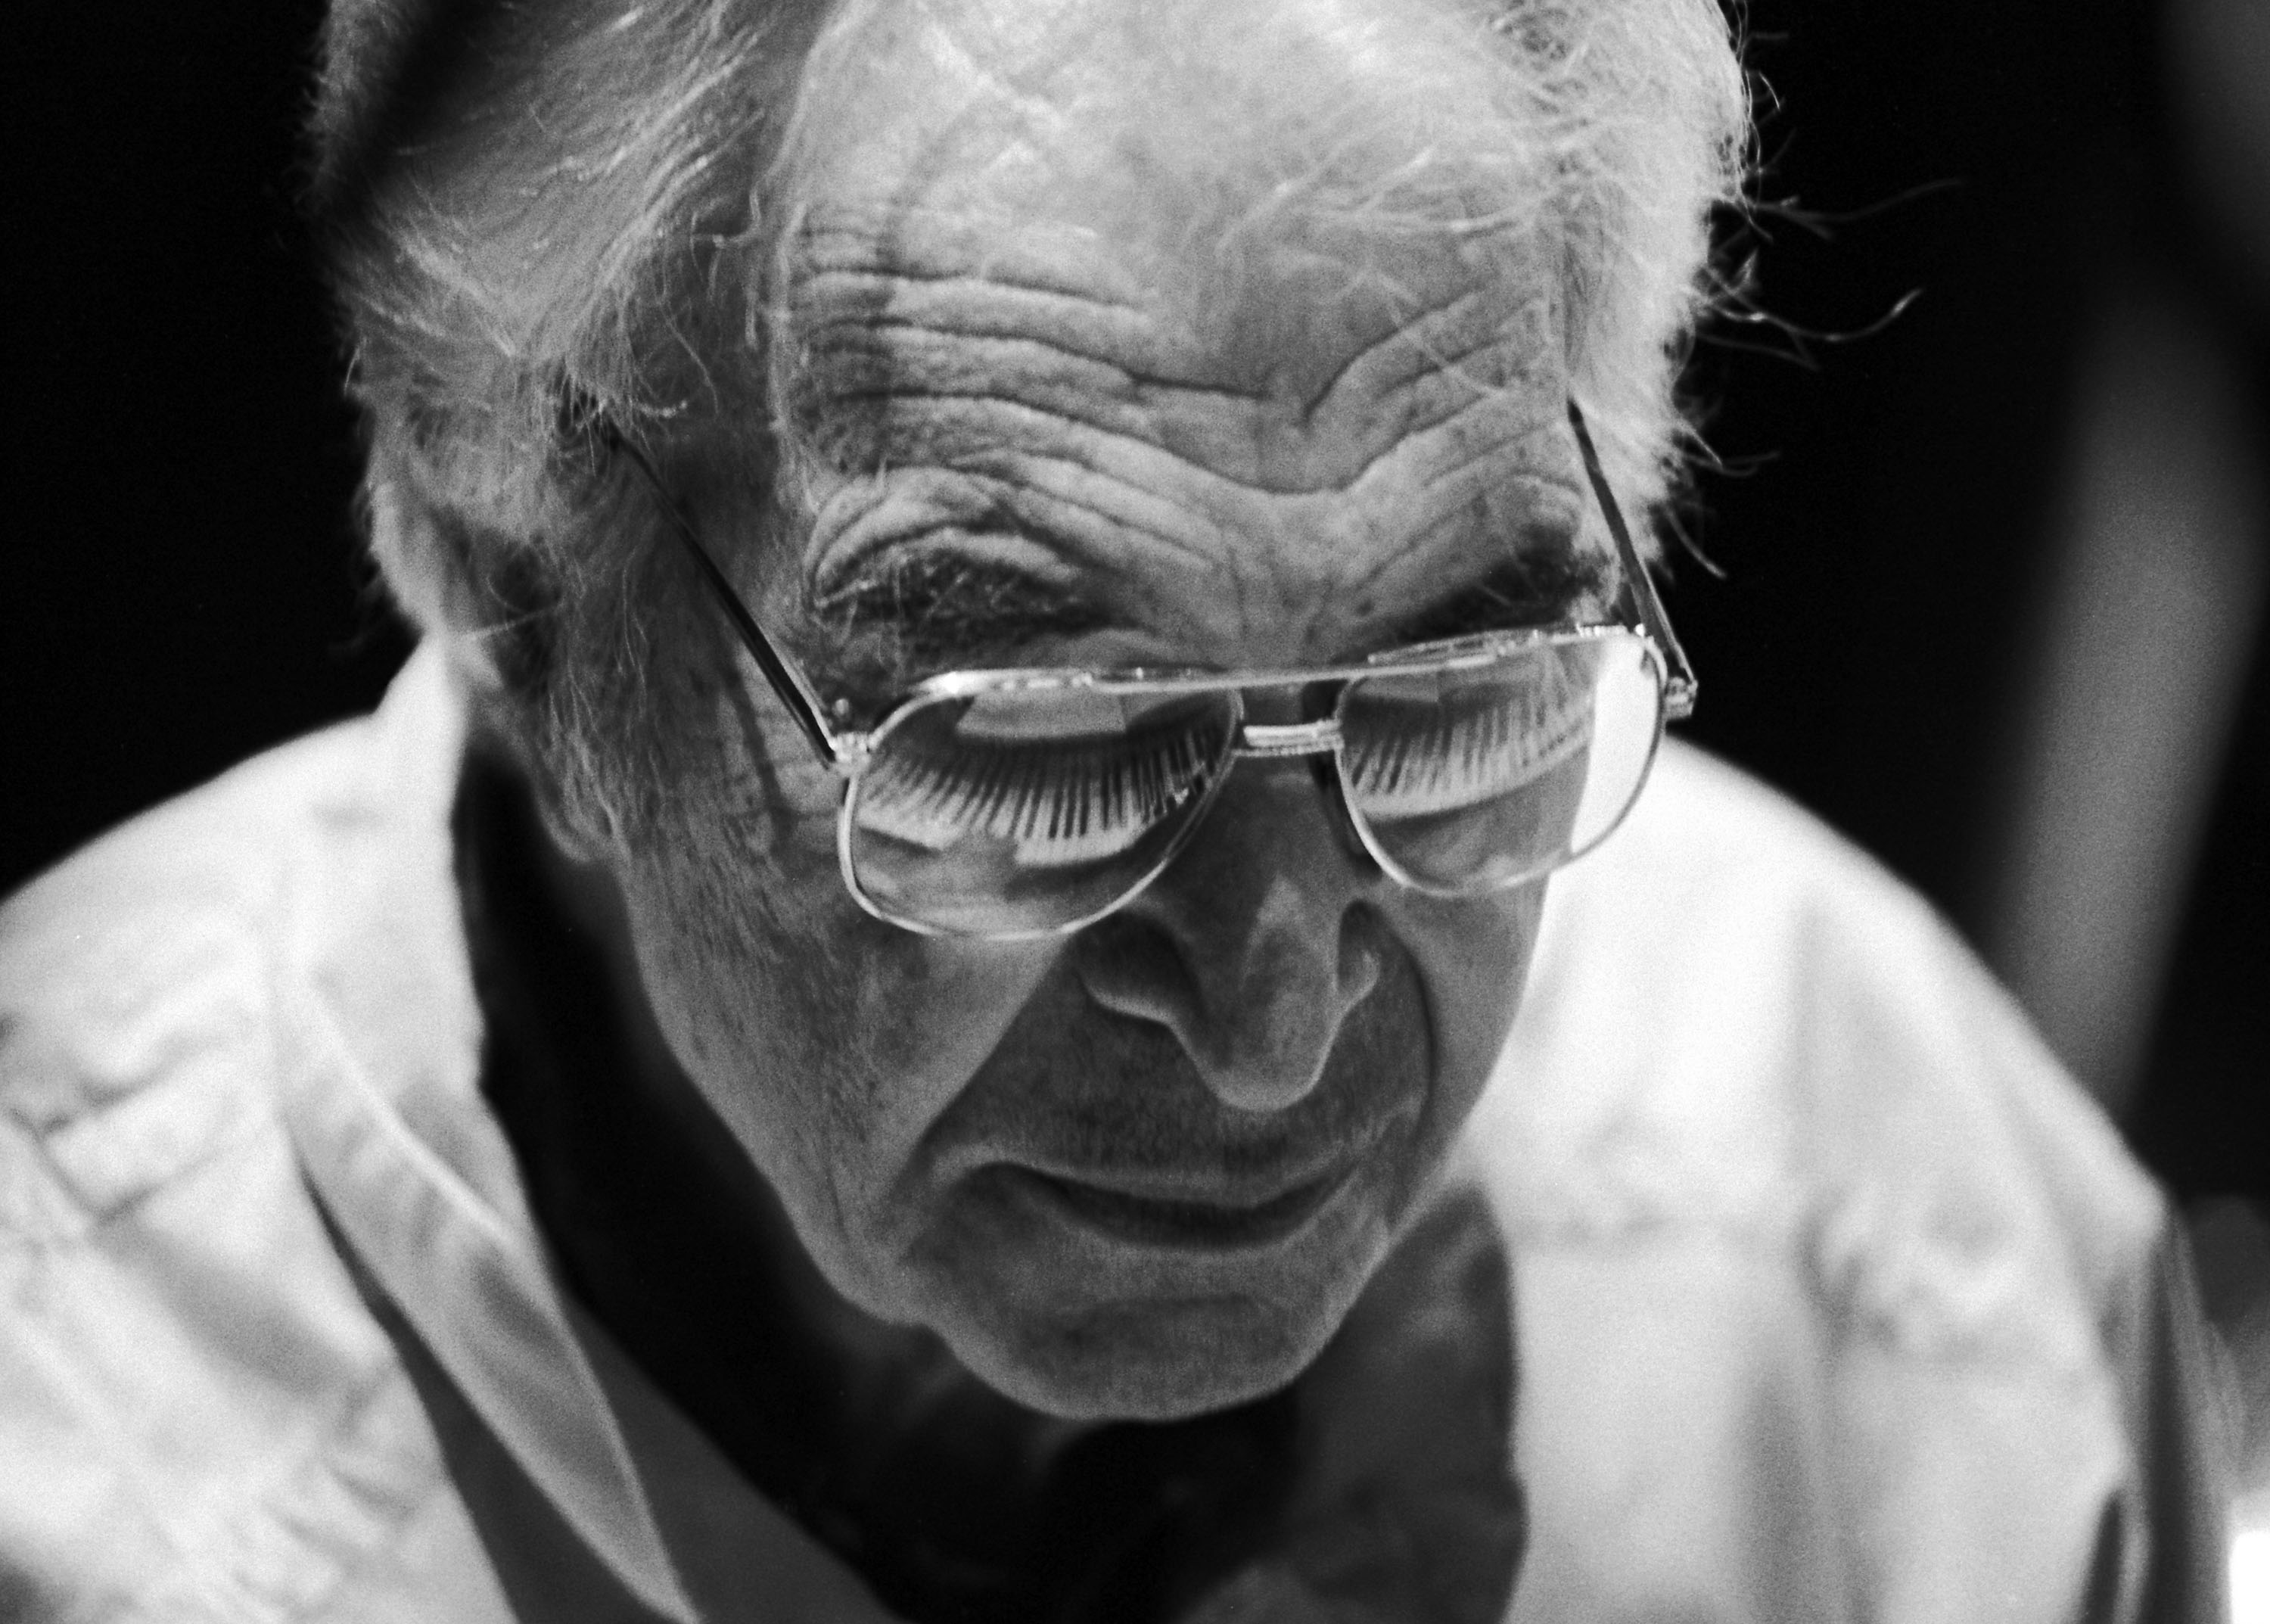 dave brubeck Download sheet music for dave brubeck choose from dave brubeck sheet music for such popular songs as take five, beautiful piano music medley: 40 pop / rock piano pieces, and my favorite things.